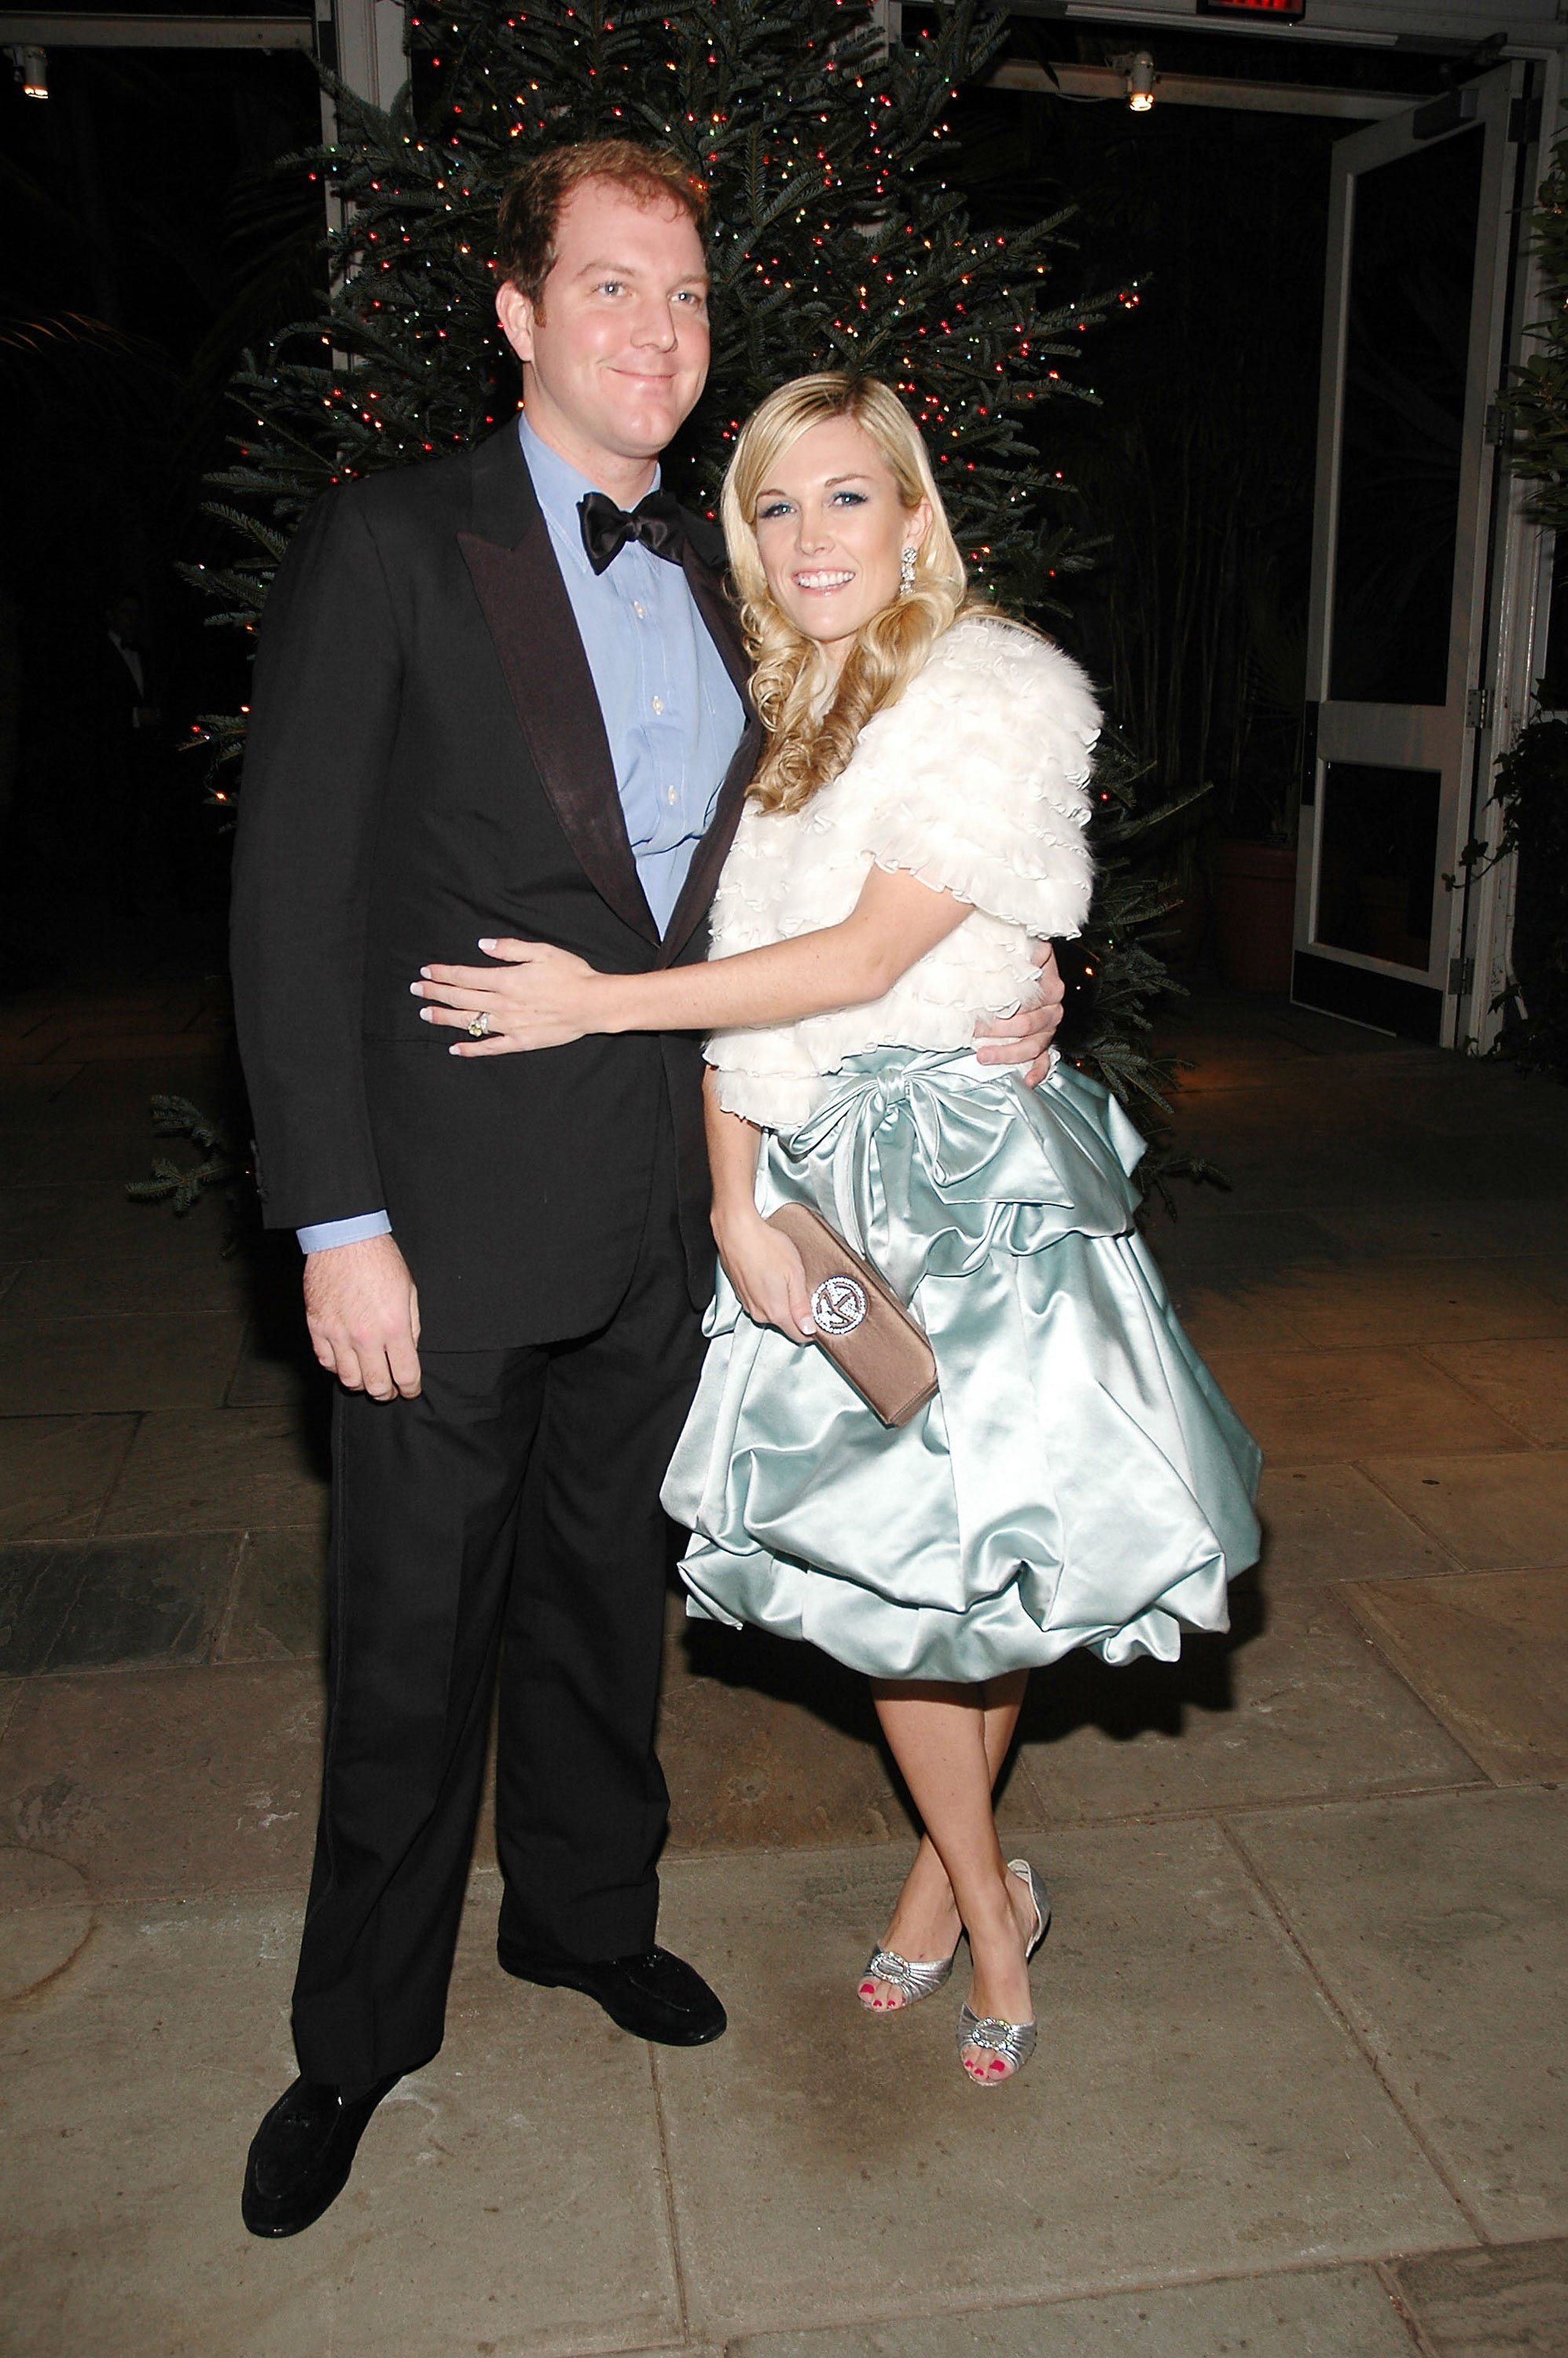 Tinsley Mortimer Past Real Housewives Of New York Cast